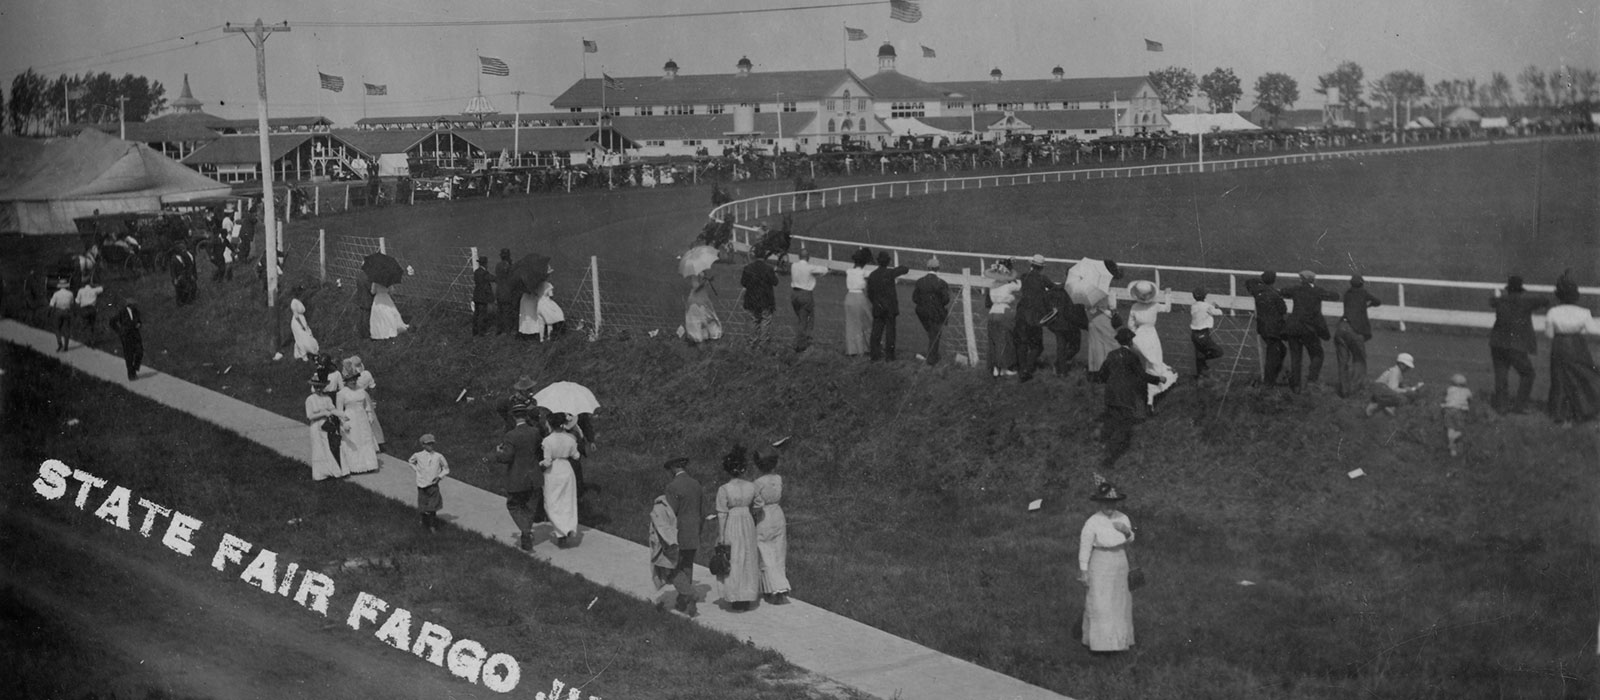 State Fair in Fargo 1912